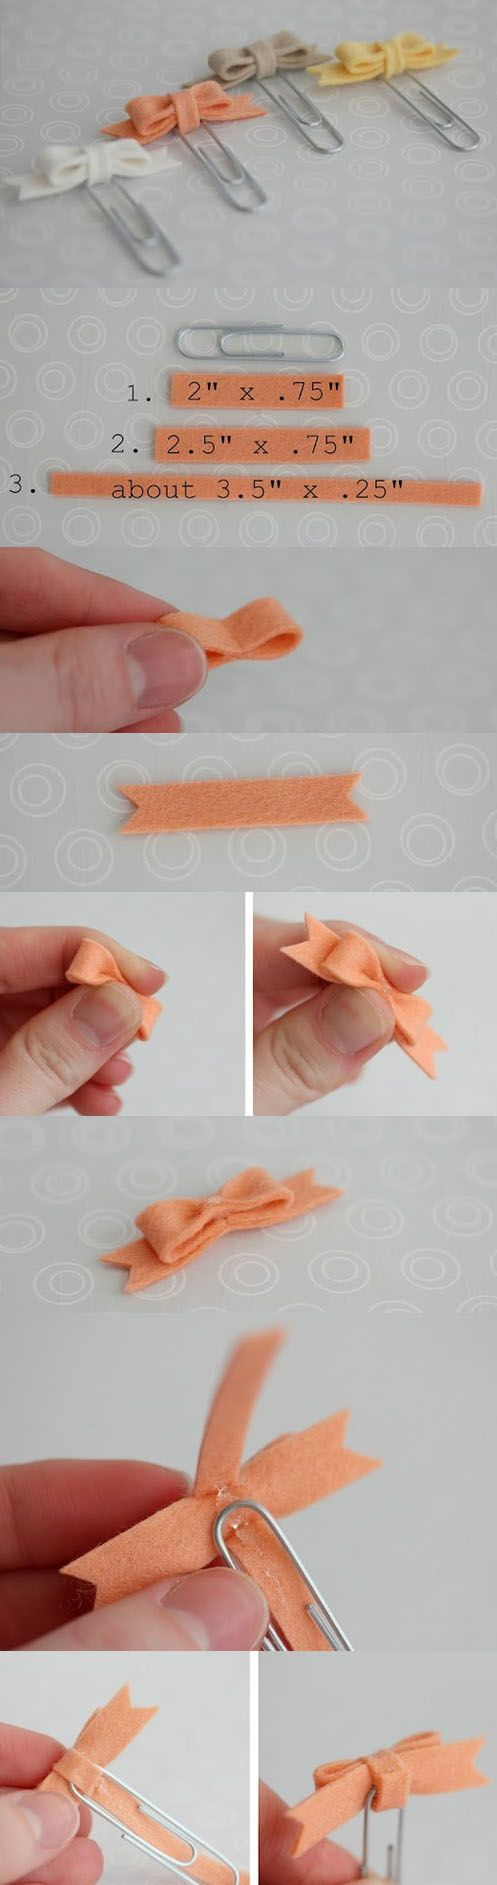 bow clips I know it shows paper clips but I think it would work for hair clips also